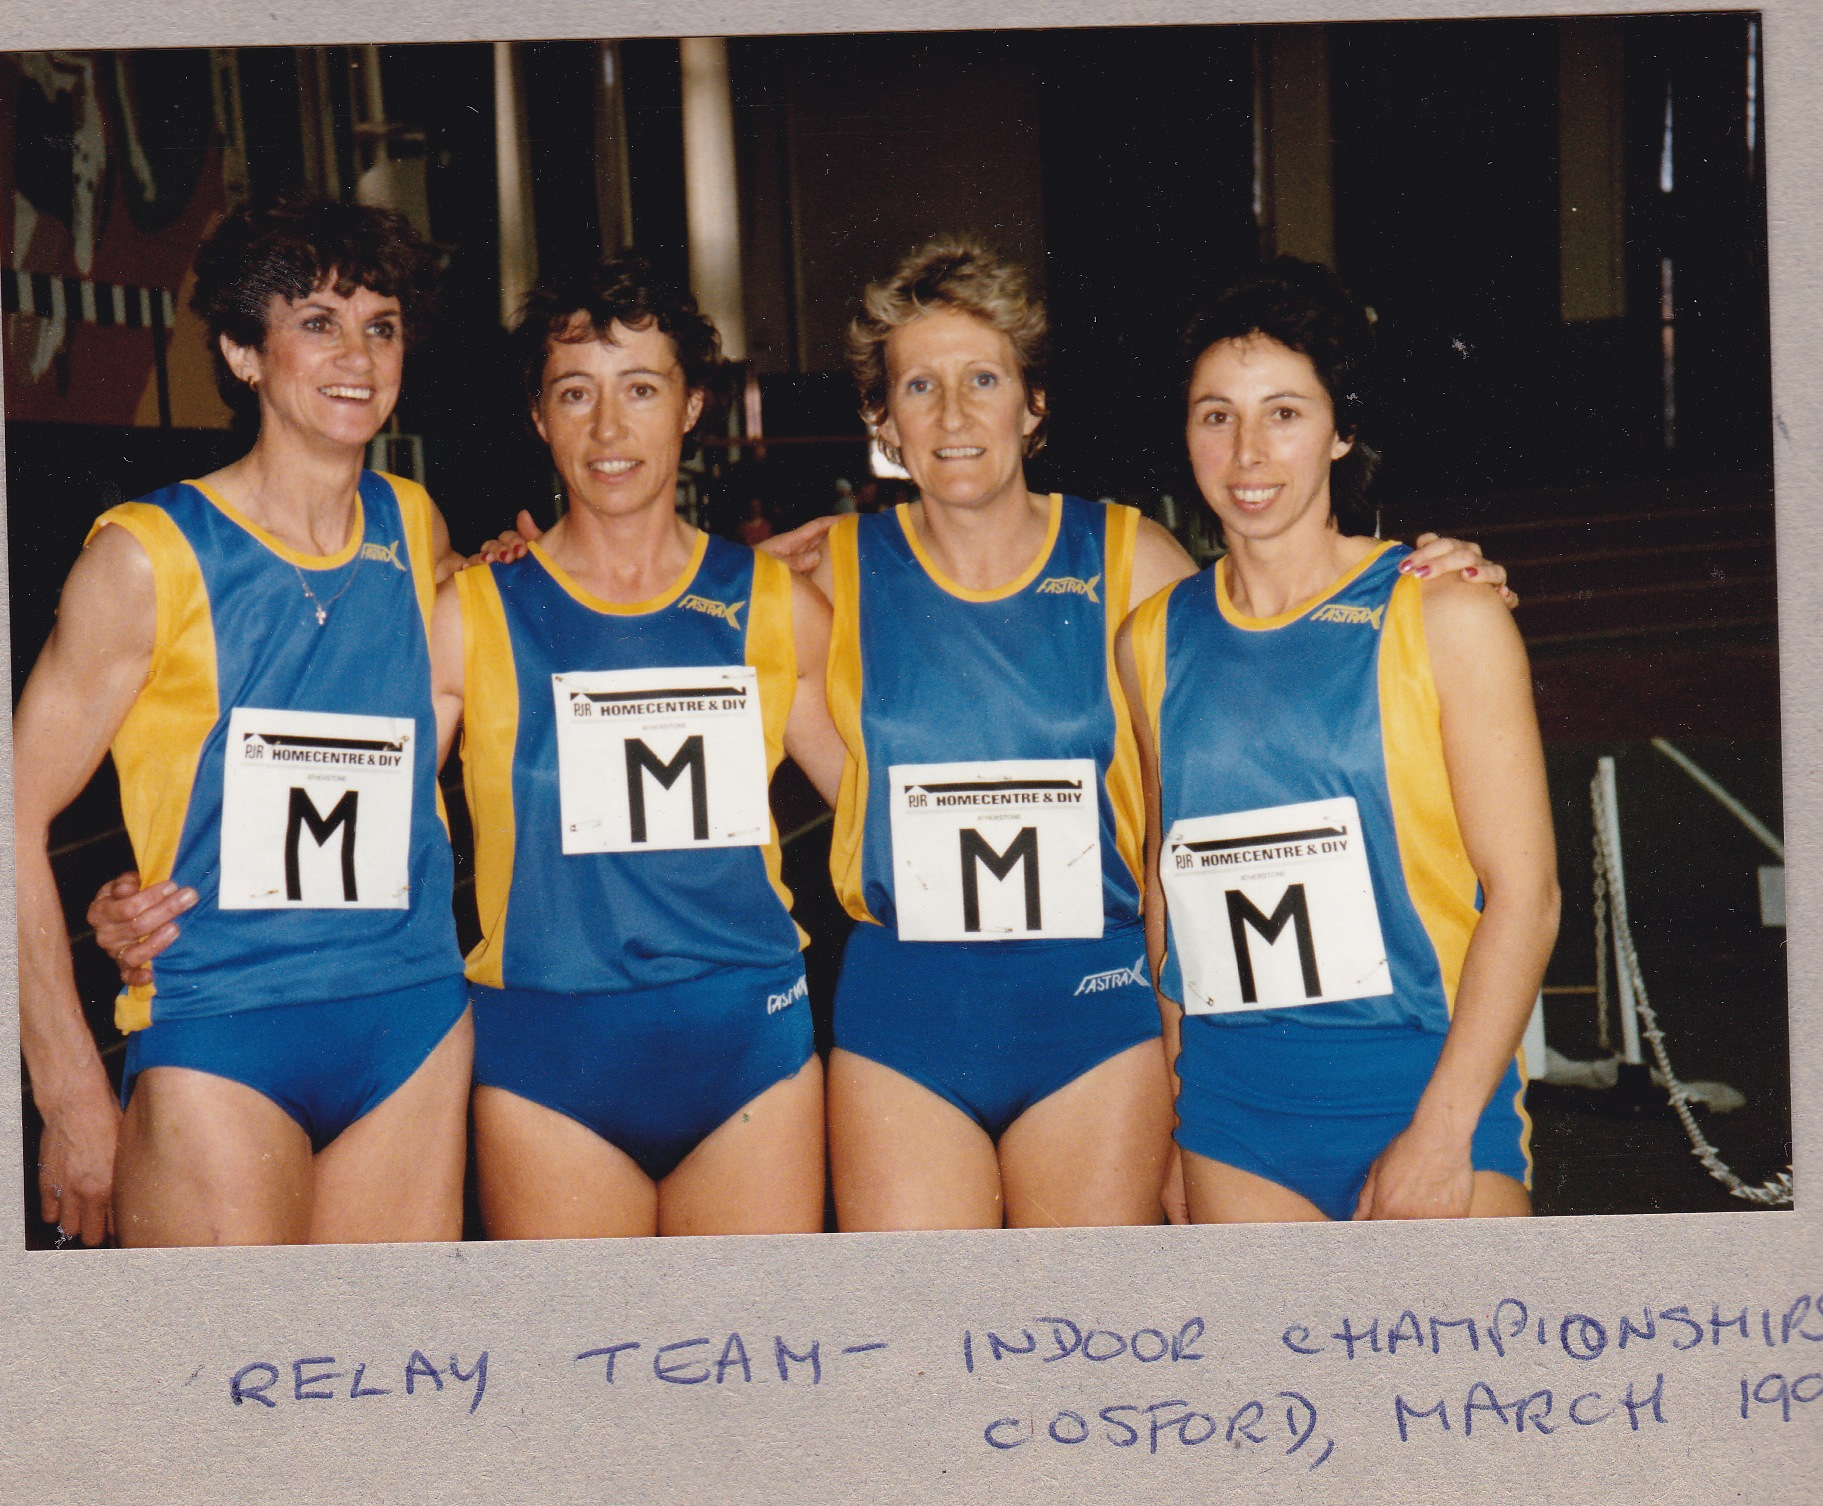 gallery/pictures/images/Some from the past .../WR breaking relay team, 1990.jpg